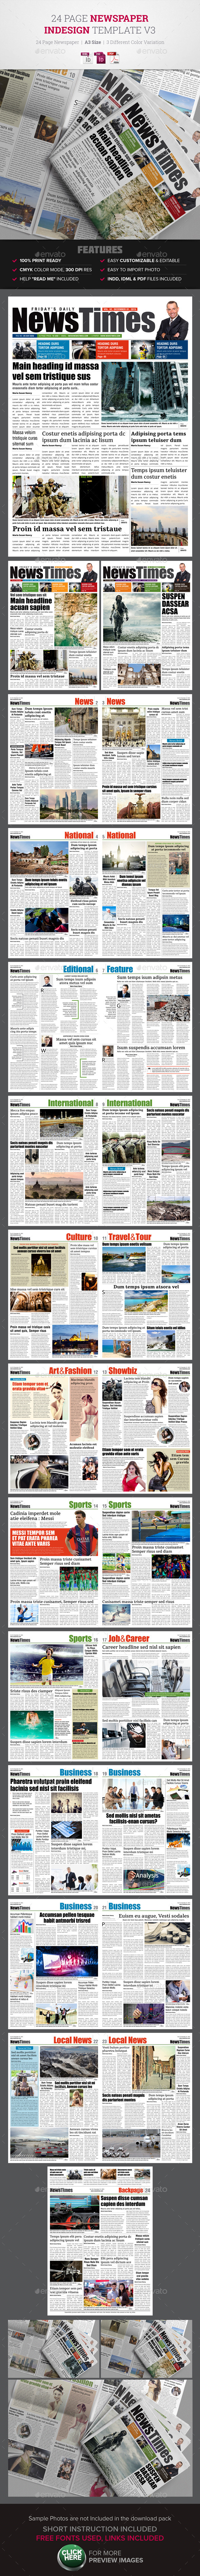 24 Page Newspaper Design v3 | Pinterest | Diseño editorial ...